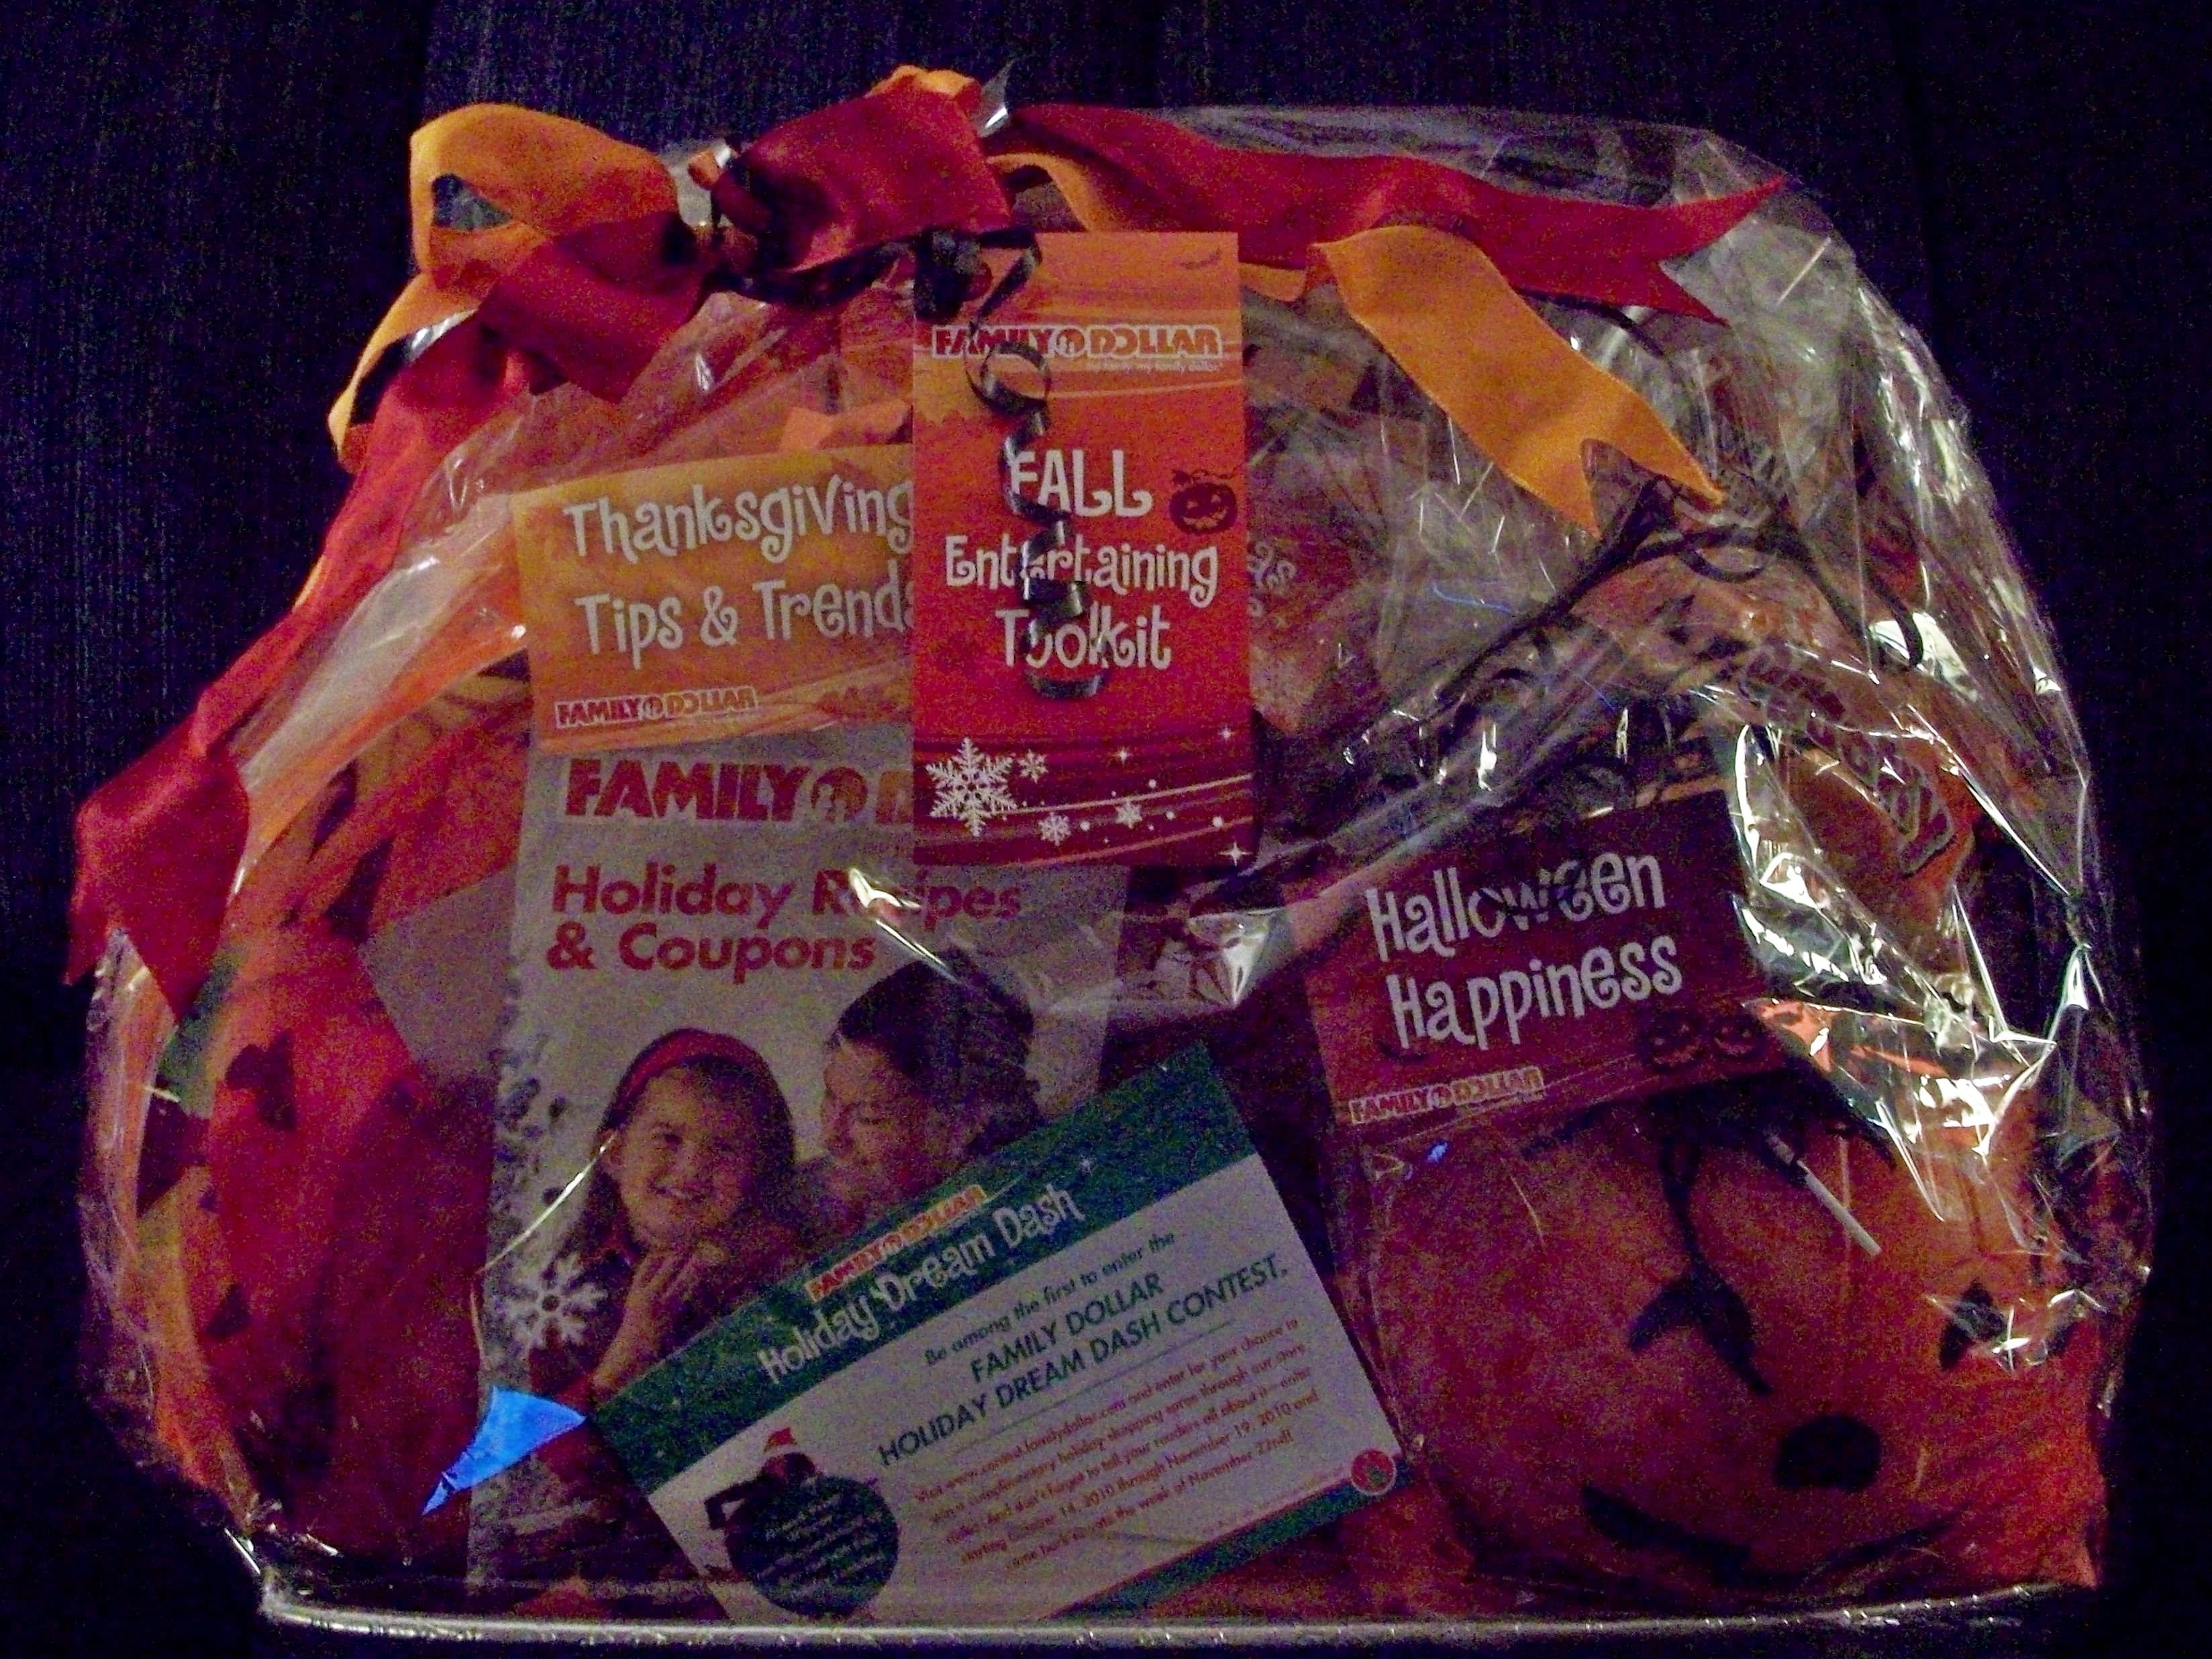 Product Review: Family Dollar Holiday Entertaining & Gift Items